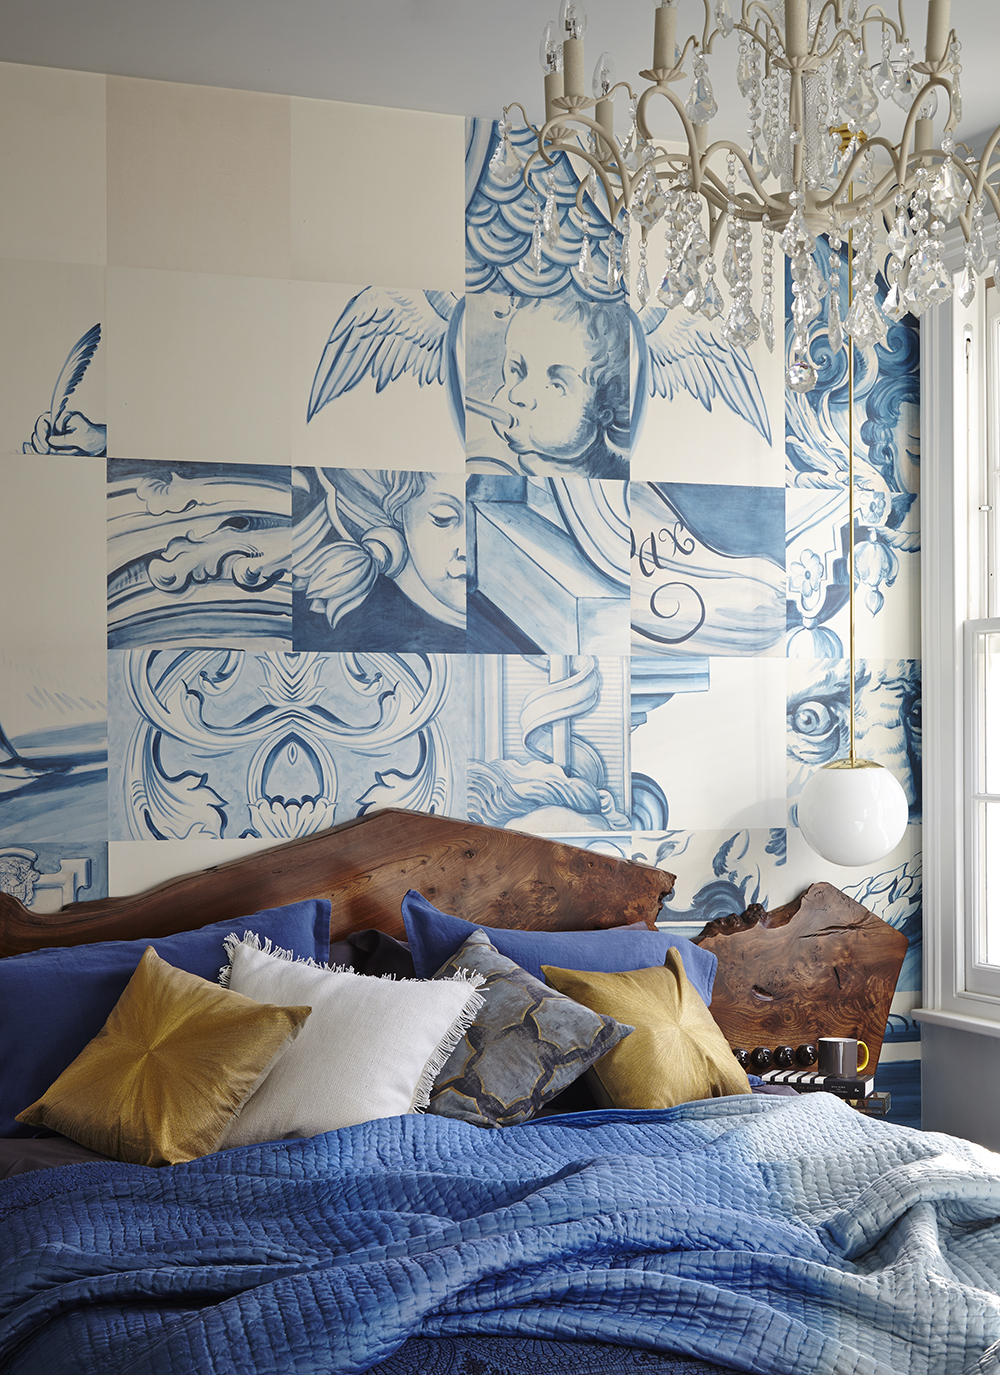 quirky stylish interior wallpaper design